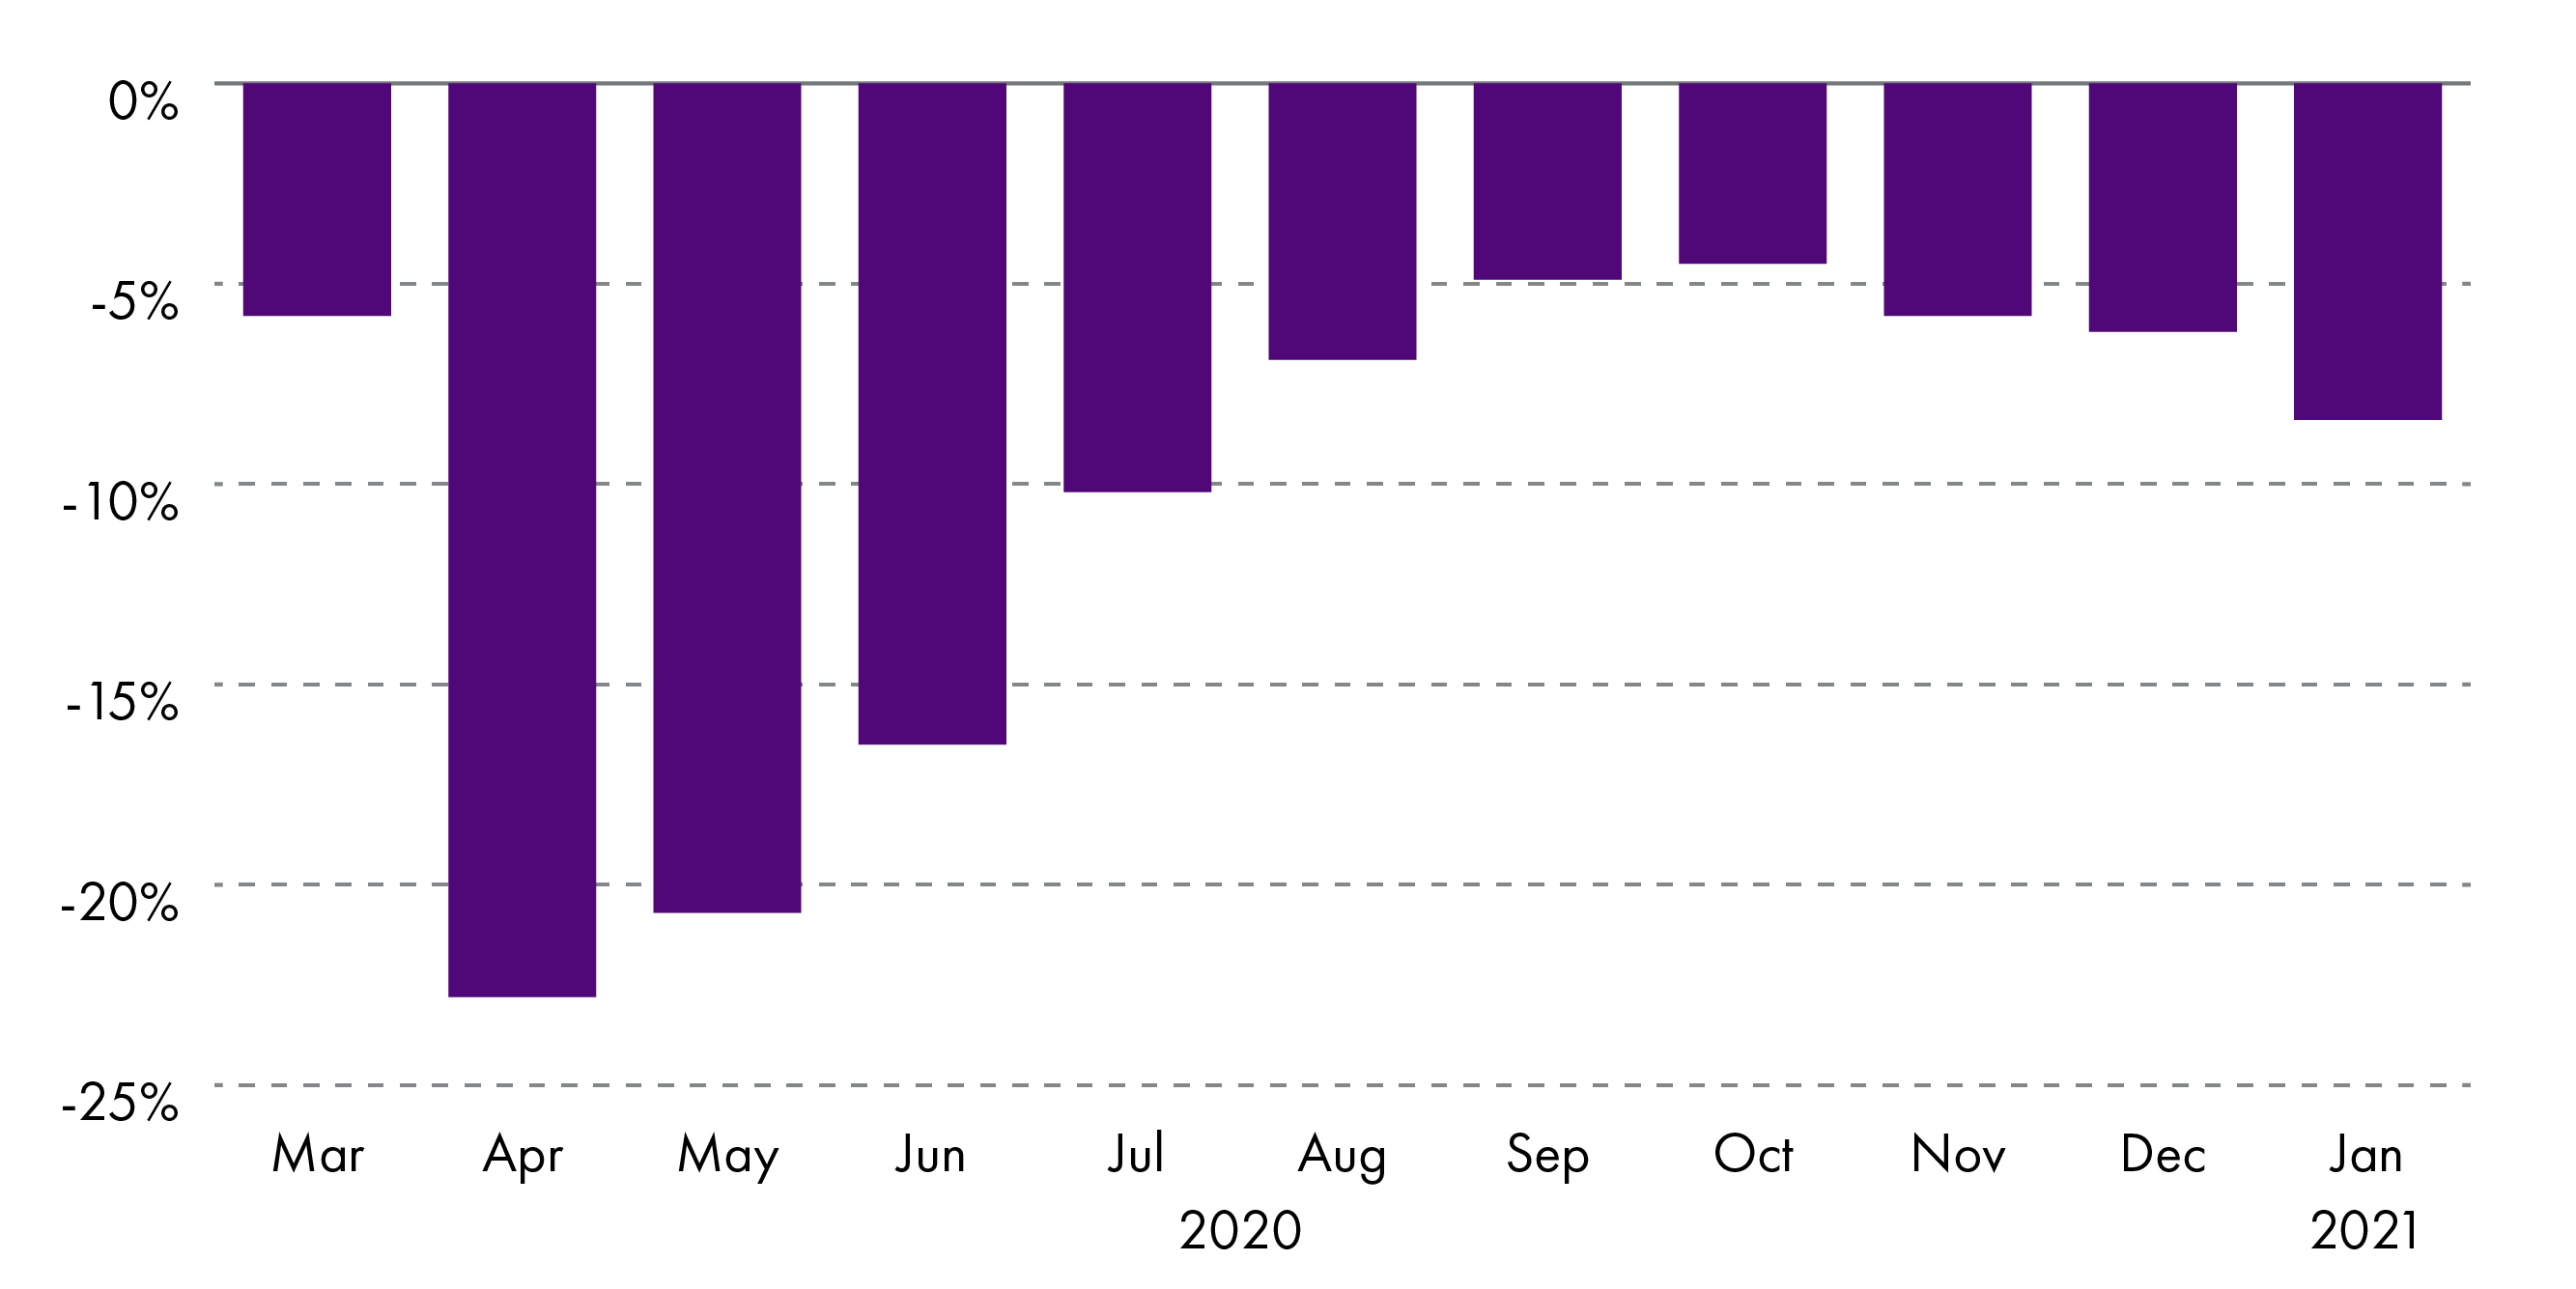 In April 2020, GDP had fallen by almost 23% before gradually improving over the year to -8.4% in January 2021.